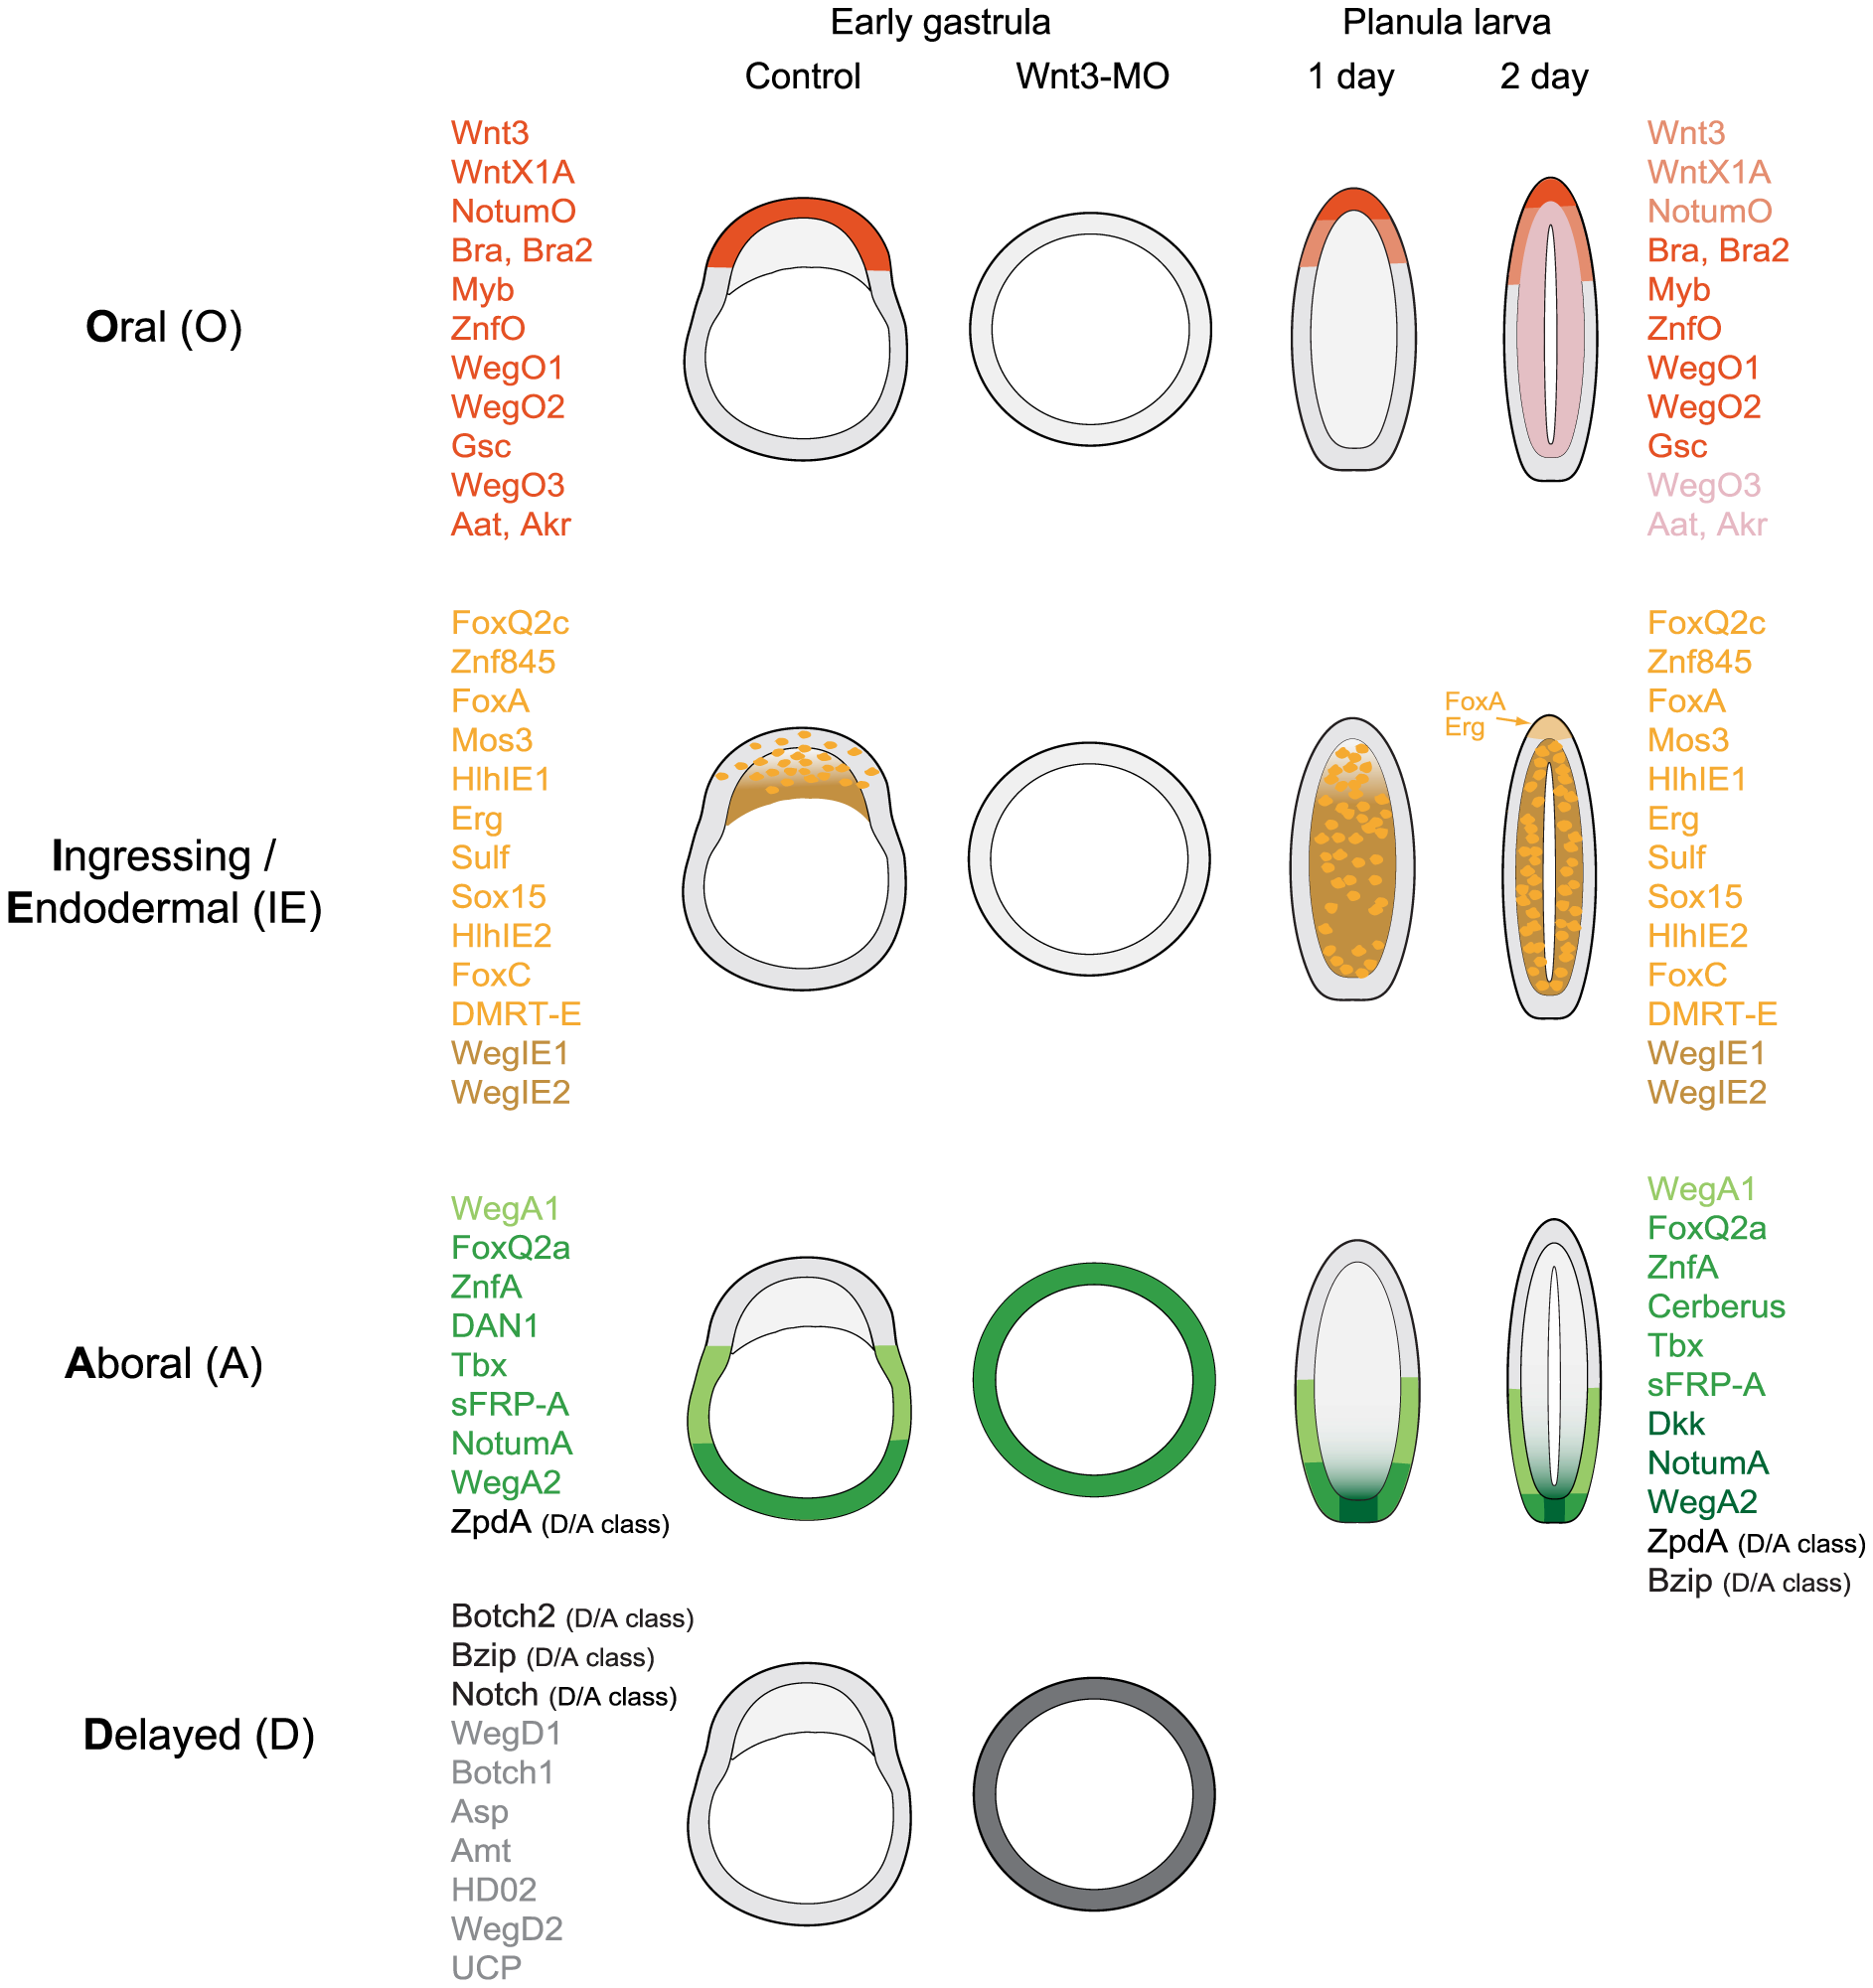 Summary of expression profiles observed for the analyzed transcripts.